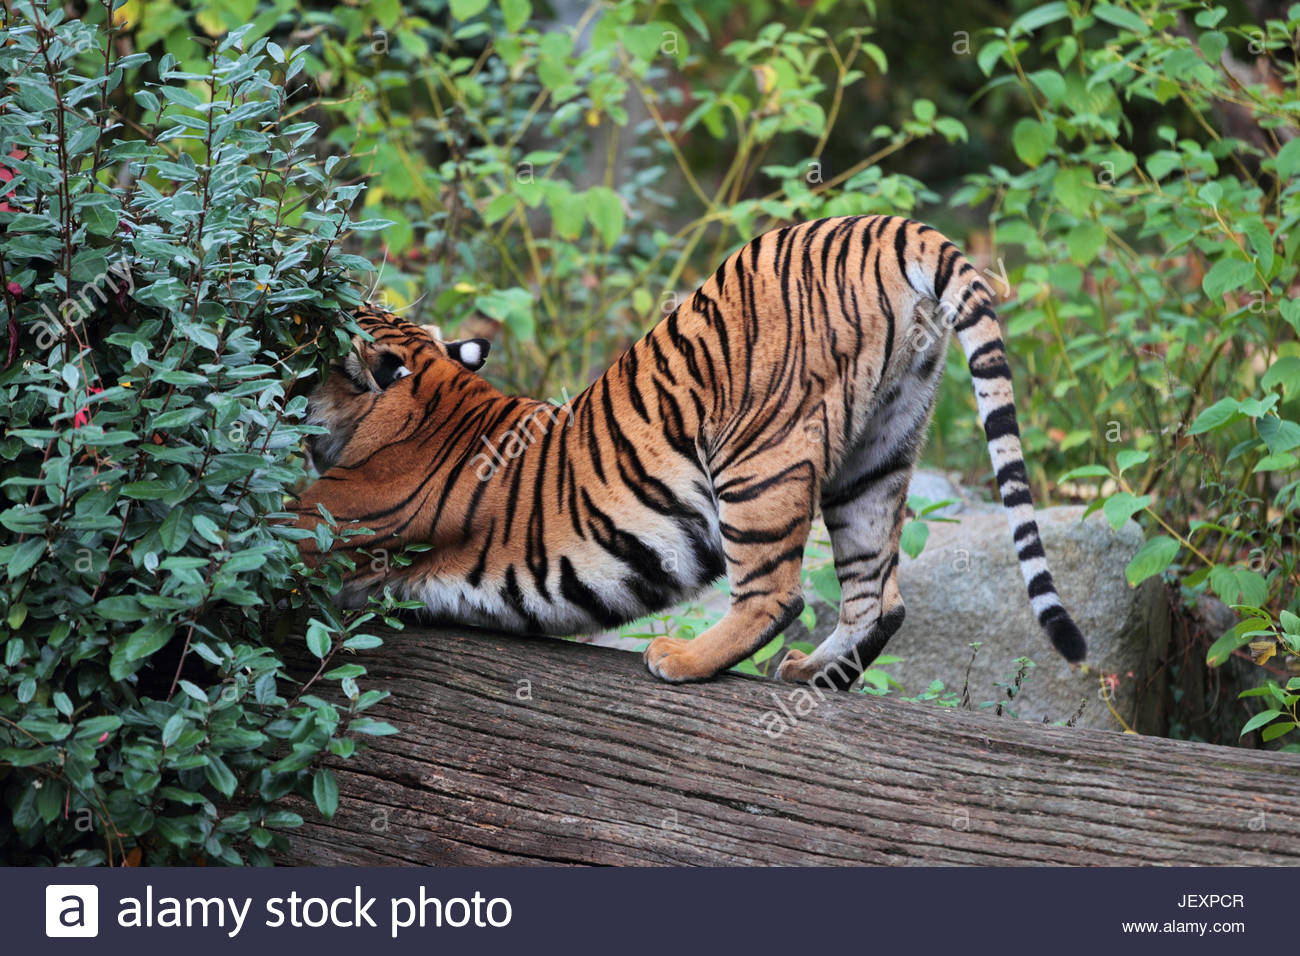 A captive Siberian or Amur tiger, Panthera tigris altaica, an endangered species, stretching. - Stock Image